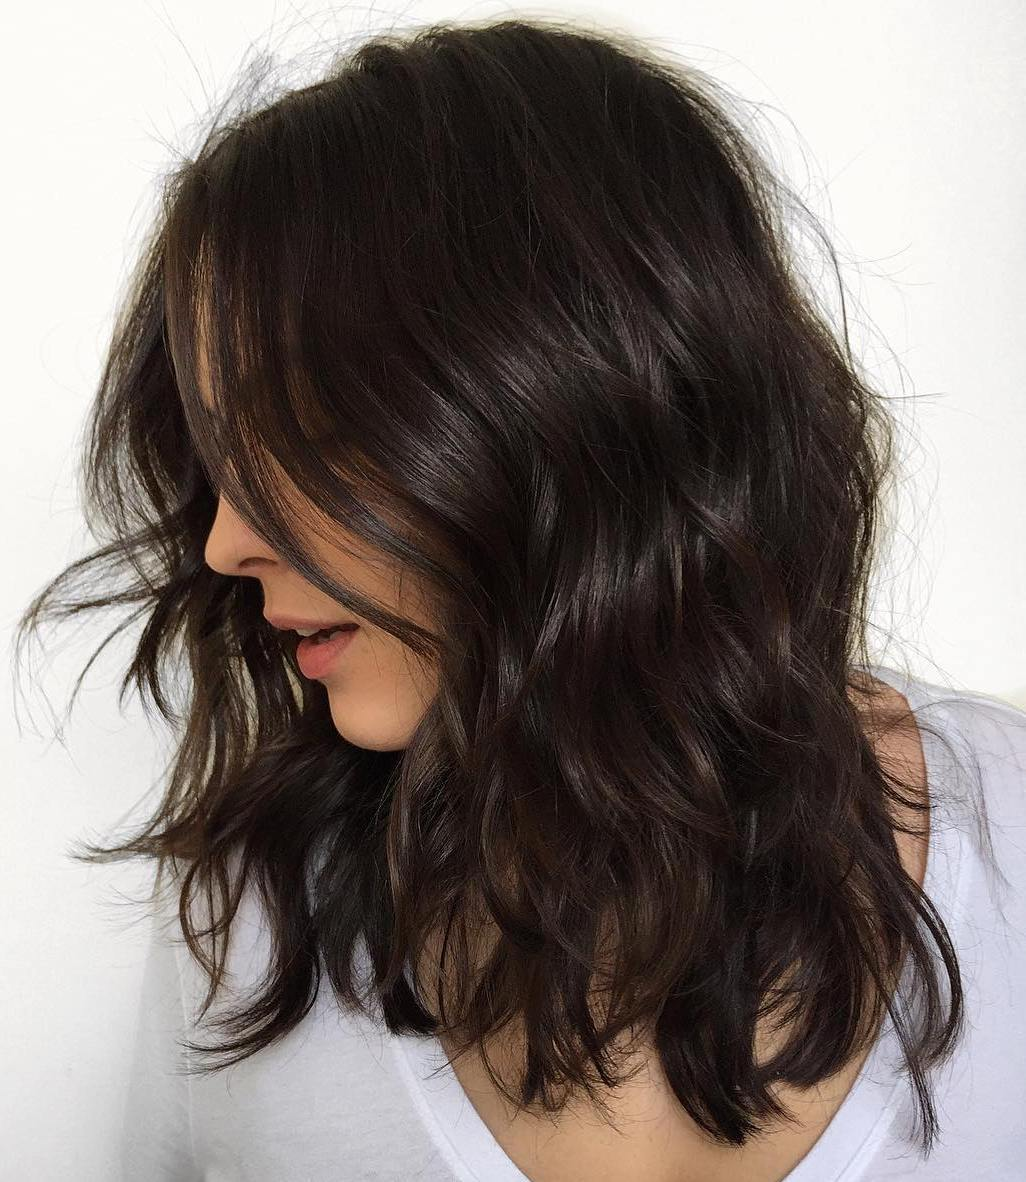 https://cms.tocdep365.vn/wp-content/uploads/2021/06/4-wavy-hairstyle-with-layers-BQAd88bhs87.jpg